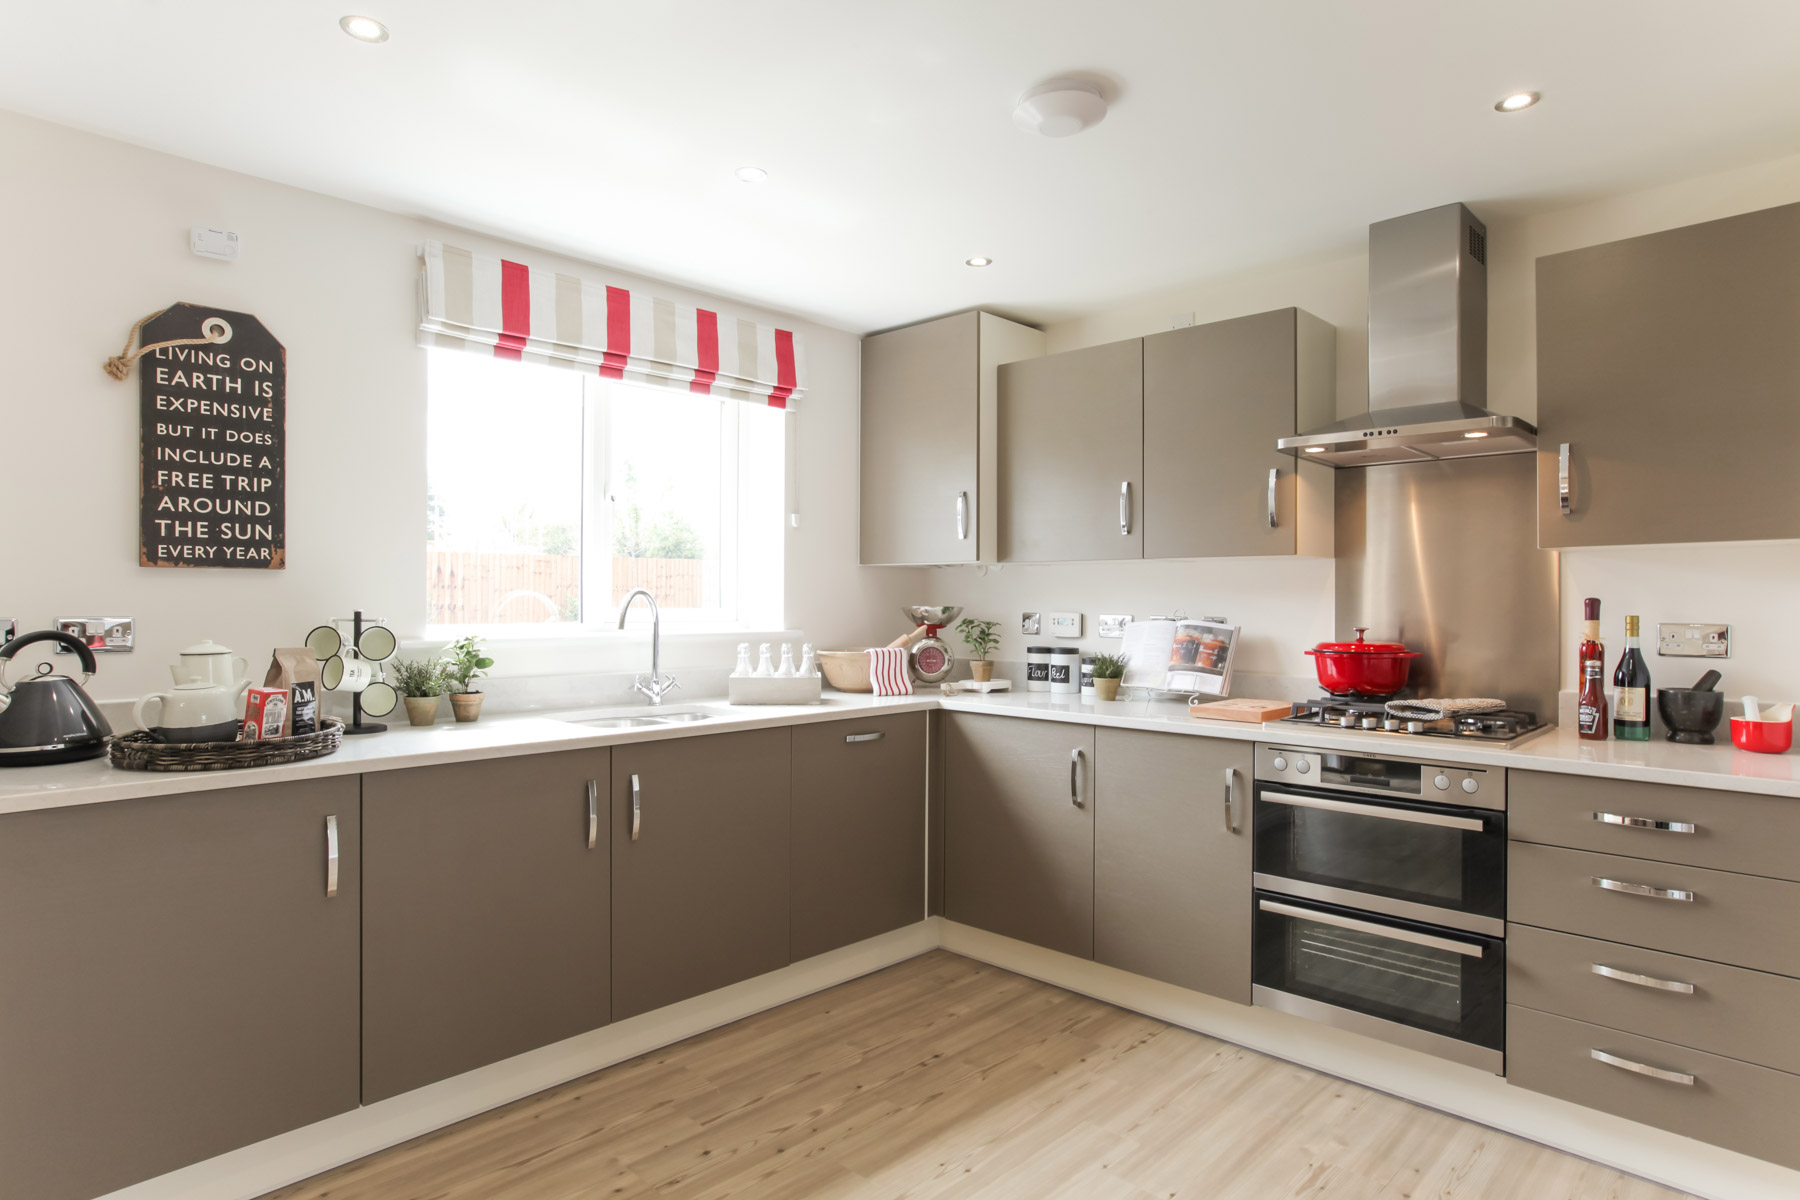 FA Heydon kitchen 1